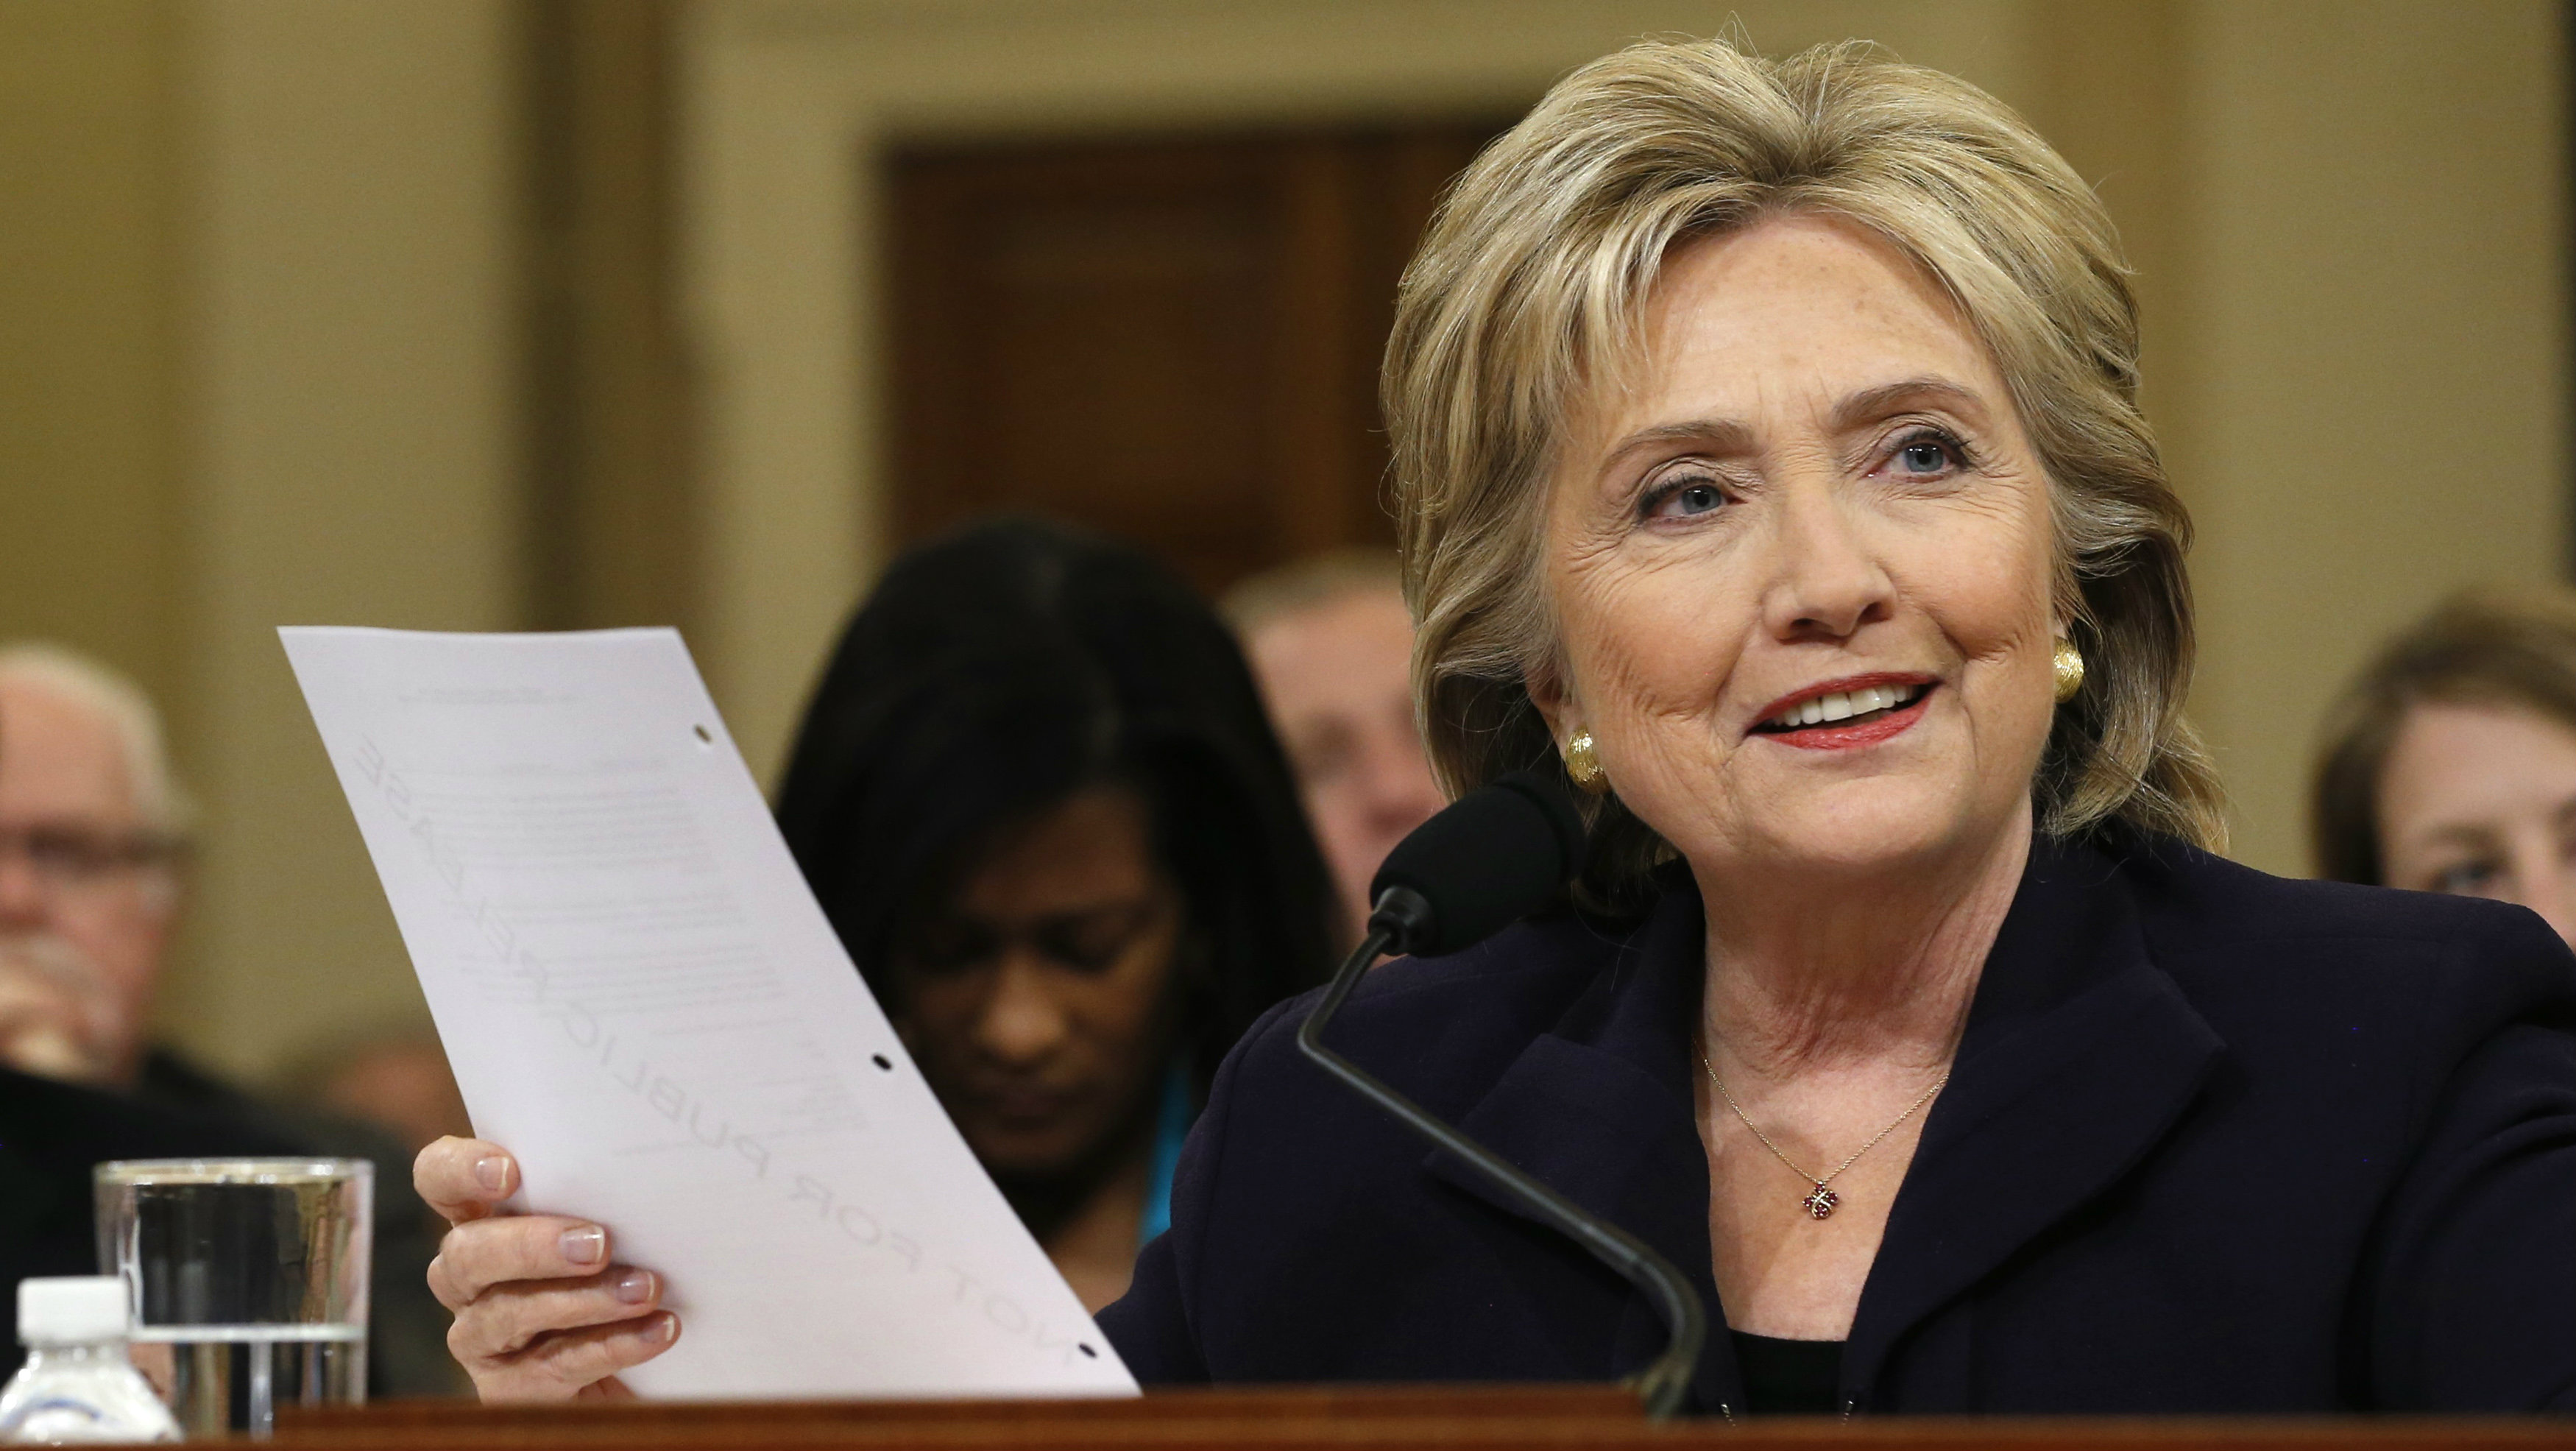 Democratic presidential candidate Hillary Clinton testifies before the House Select Committee on Benghazi, on Capitol Hill in Washington October 22, 2015.